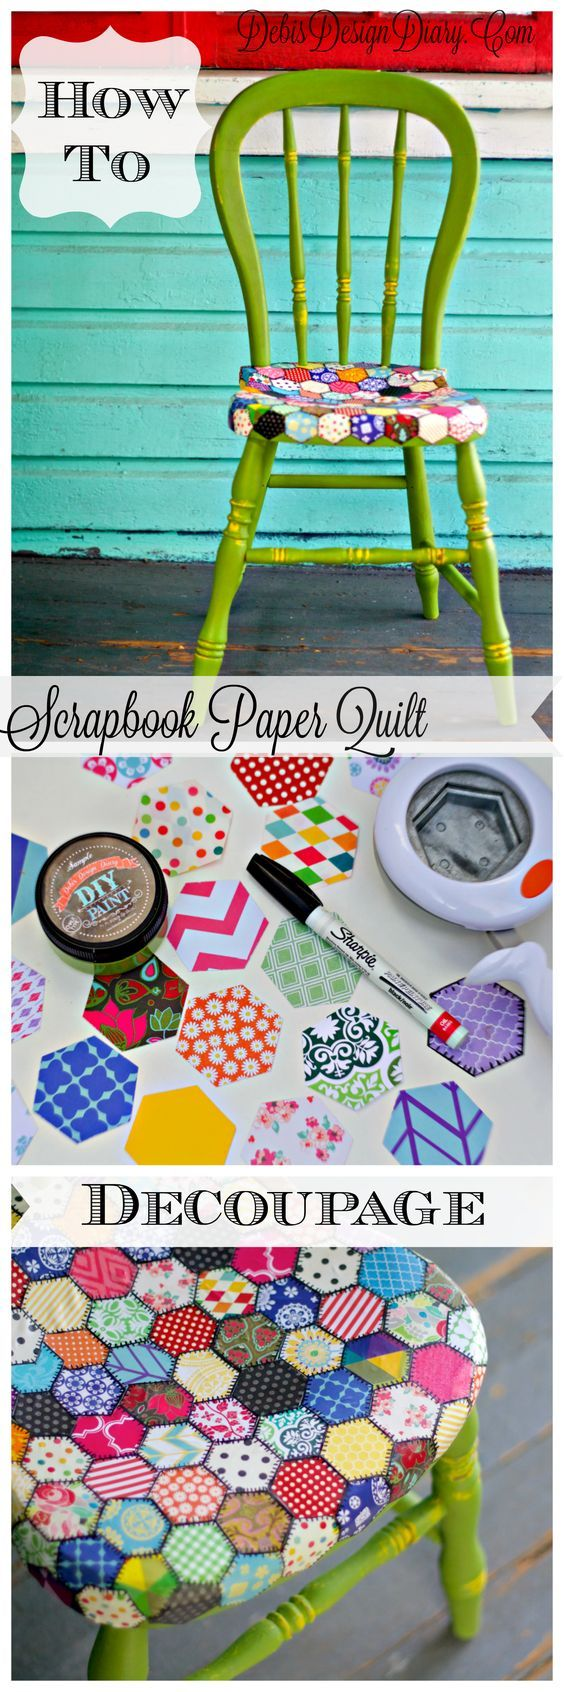 How to decoupage a quilt pattern with scrapbook paper